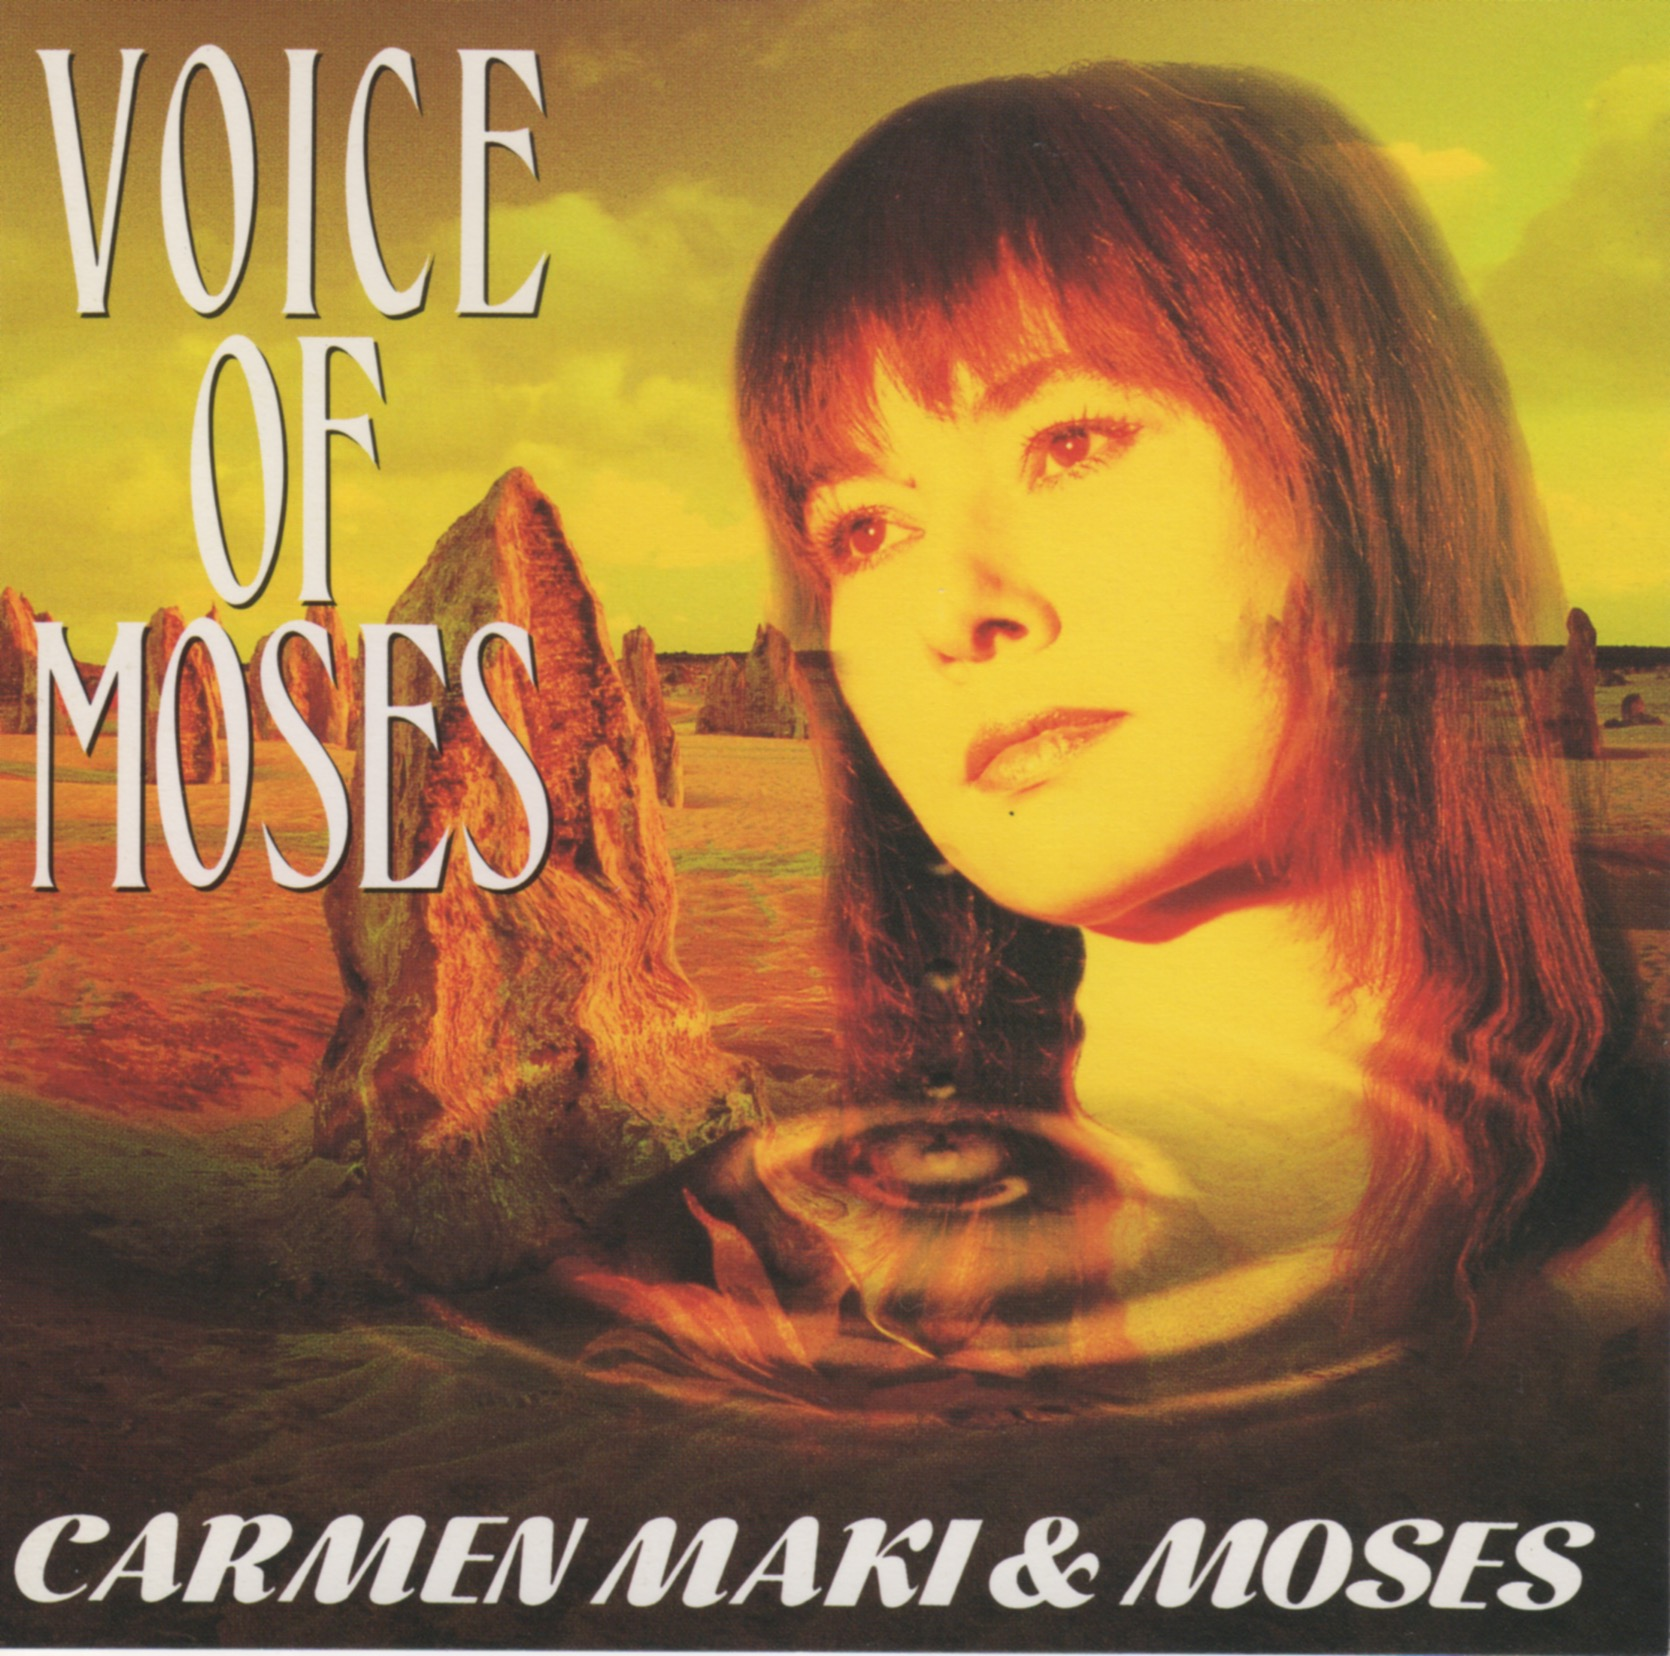 VOICES OF MOSES